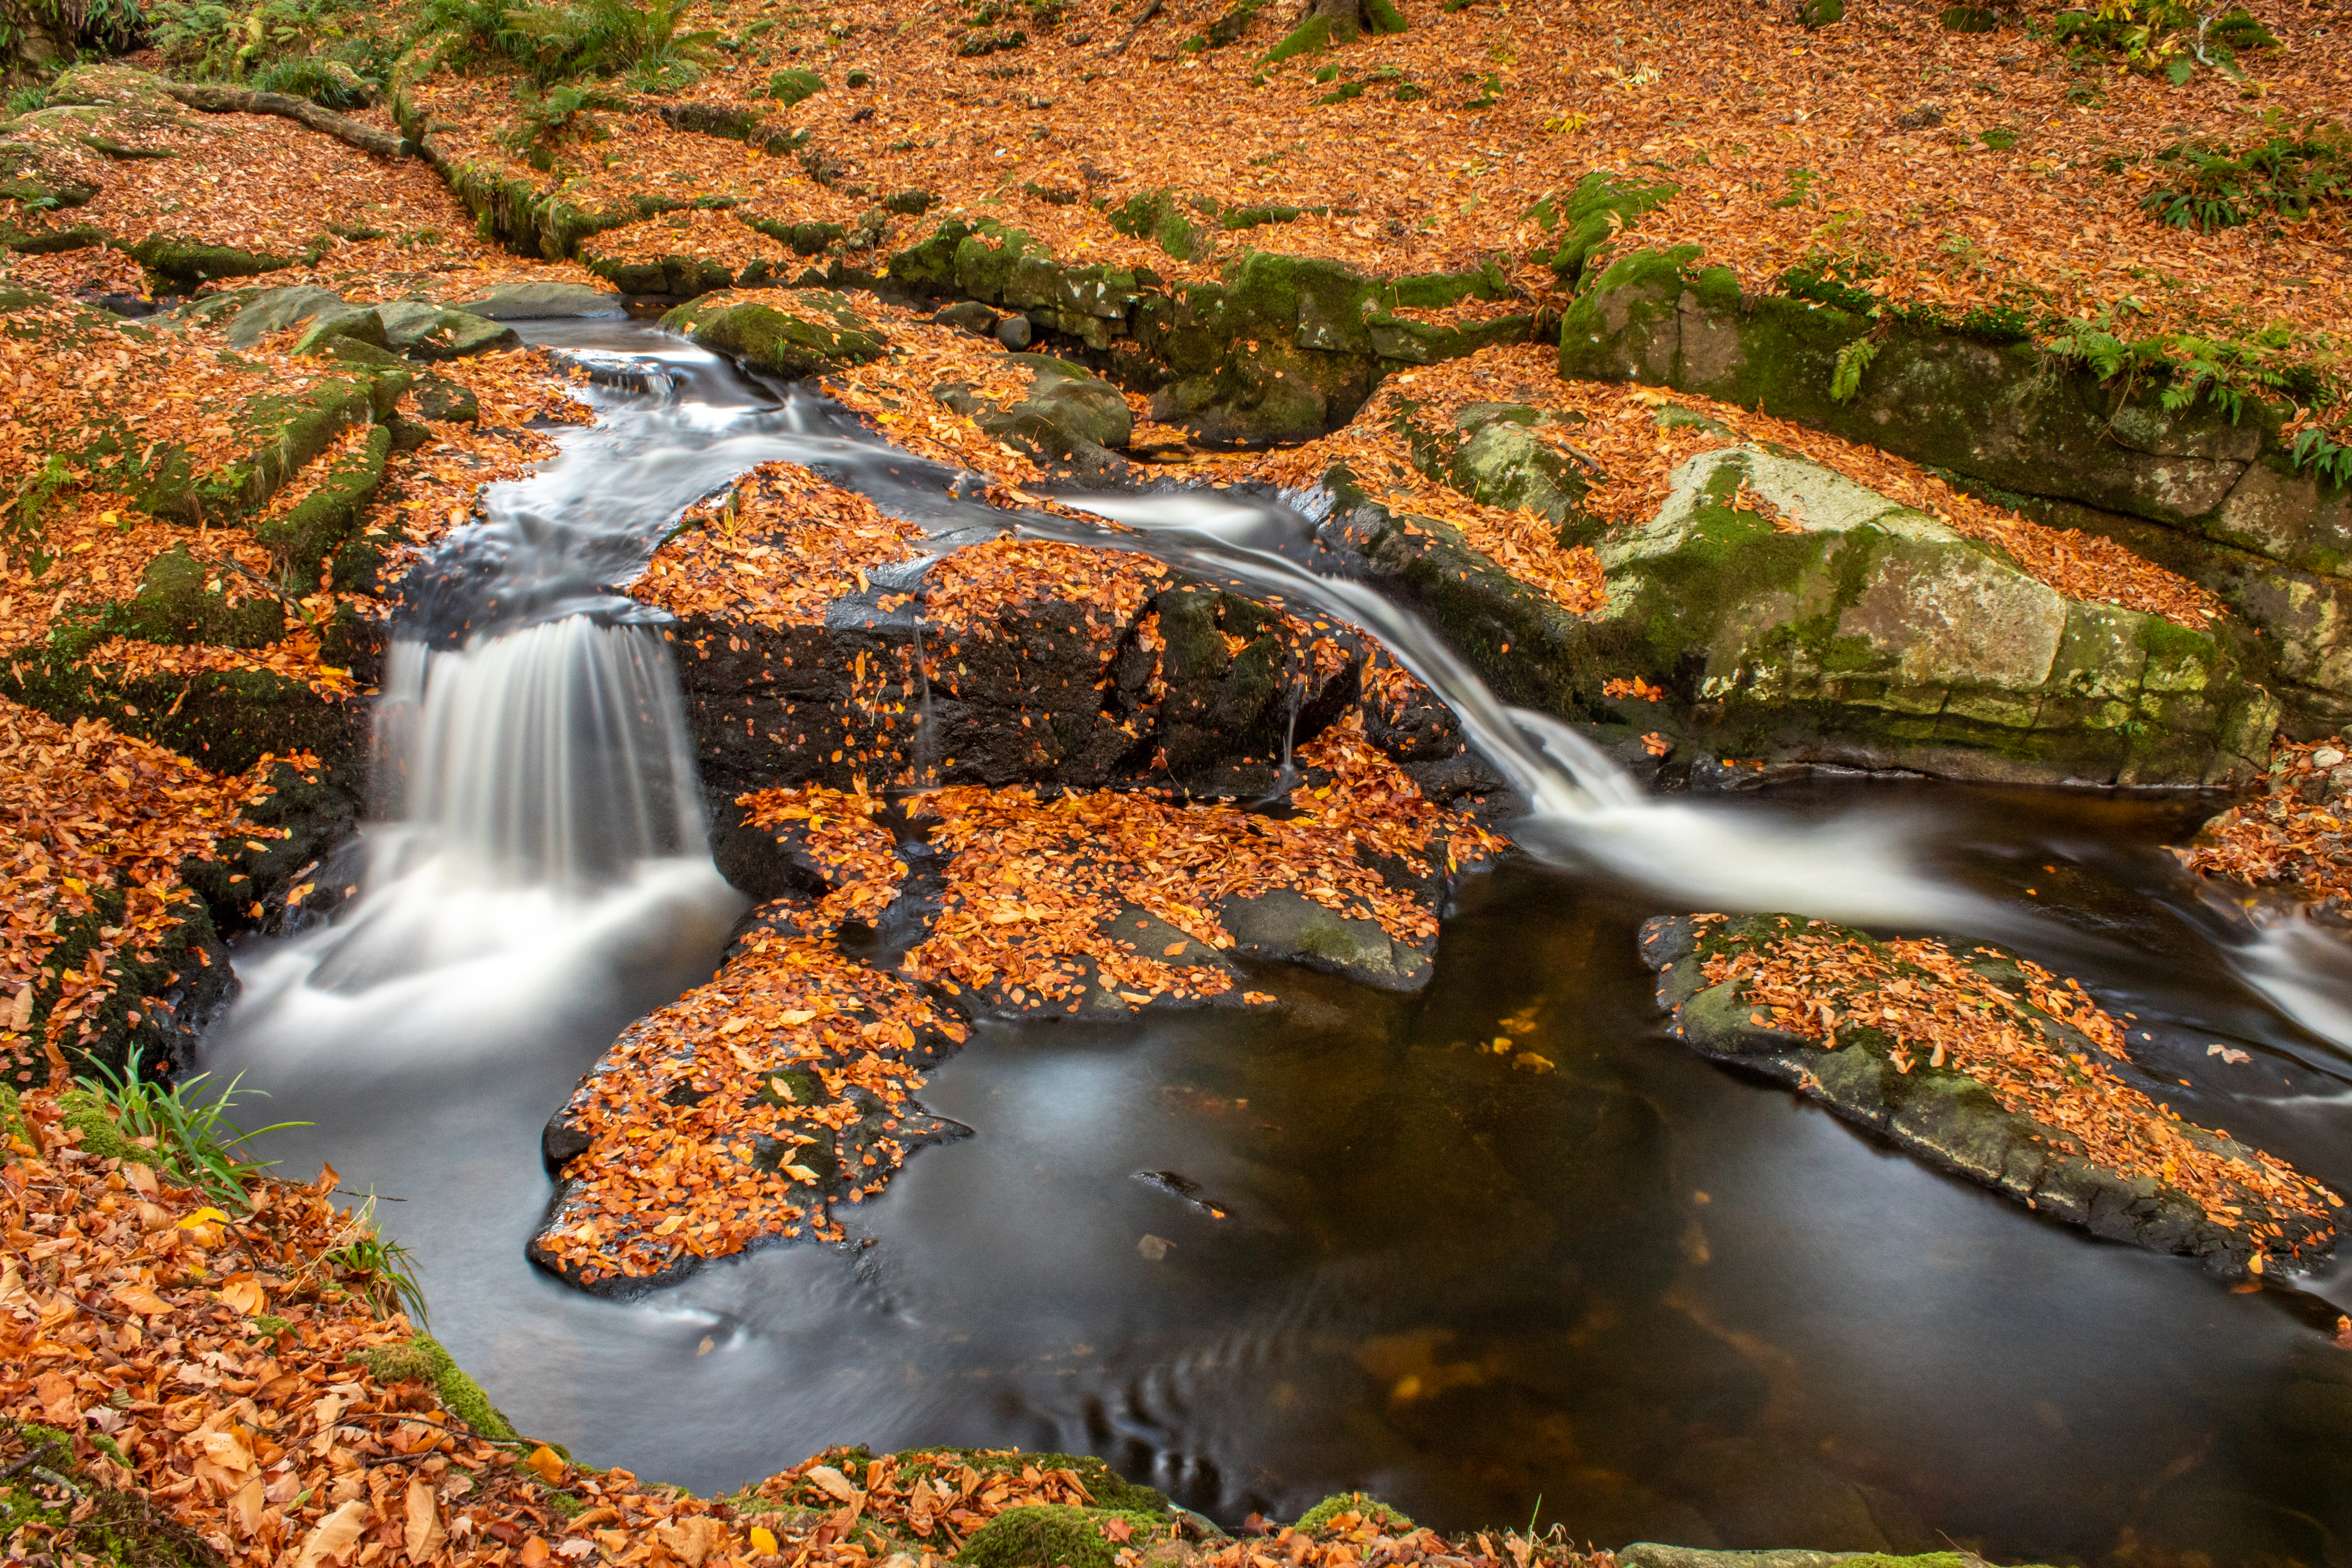 River Tumbling into a Bowl in Autumn, Cloughlea, County Wicklow